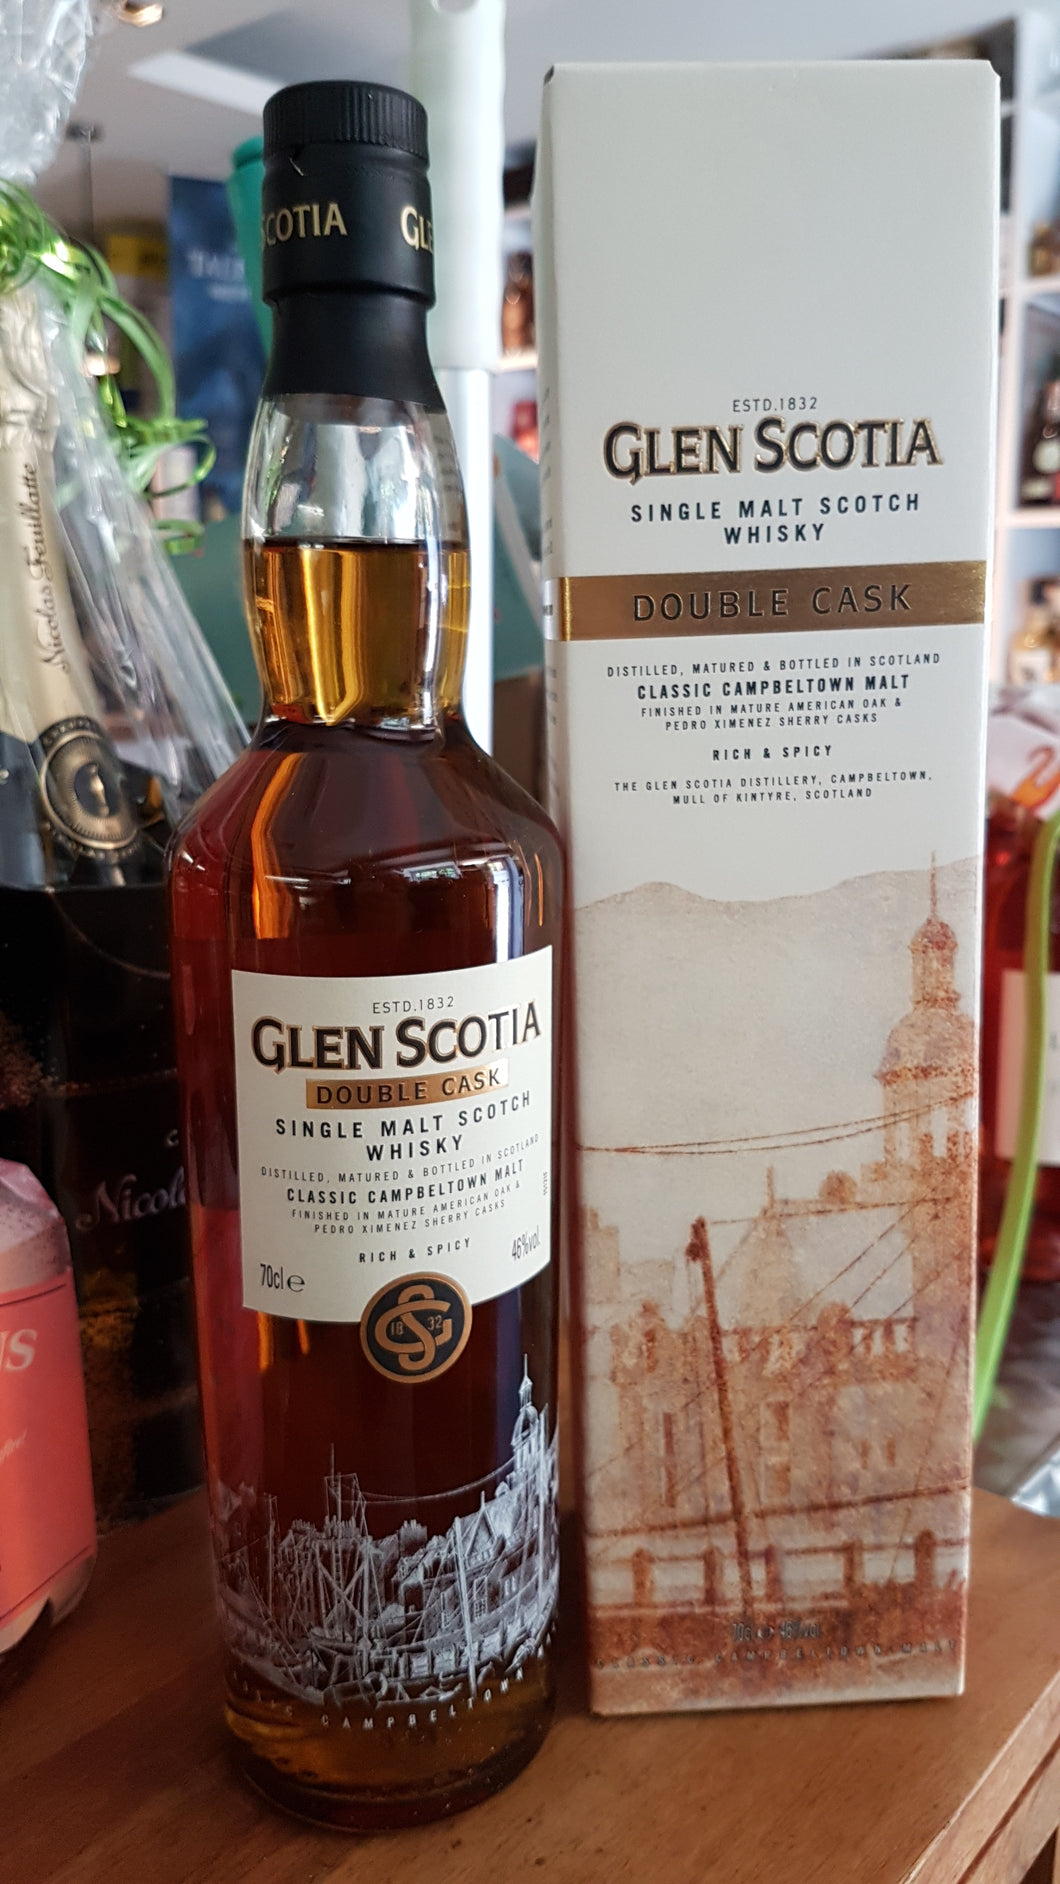 Glenscotia double cask bourbon sherry single malt scotch whisky  0.7l Fl 46%